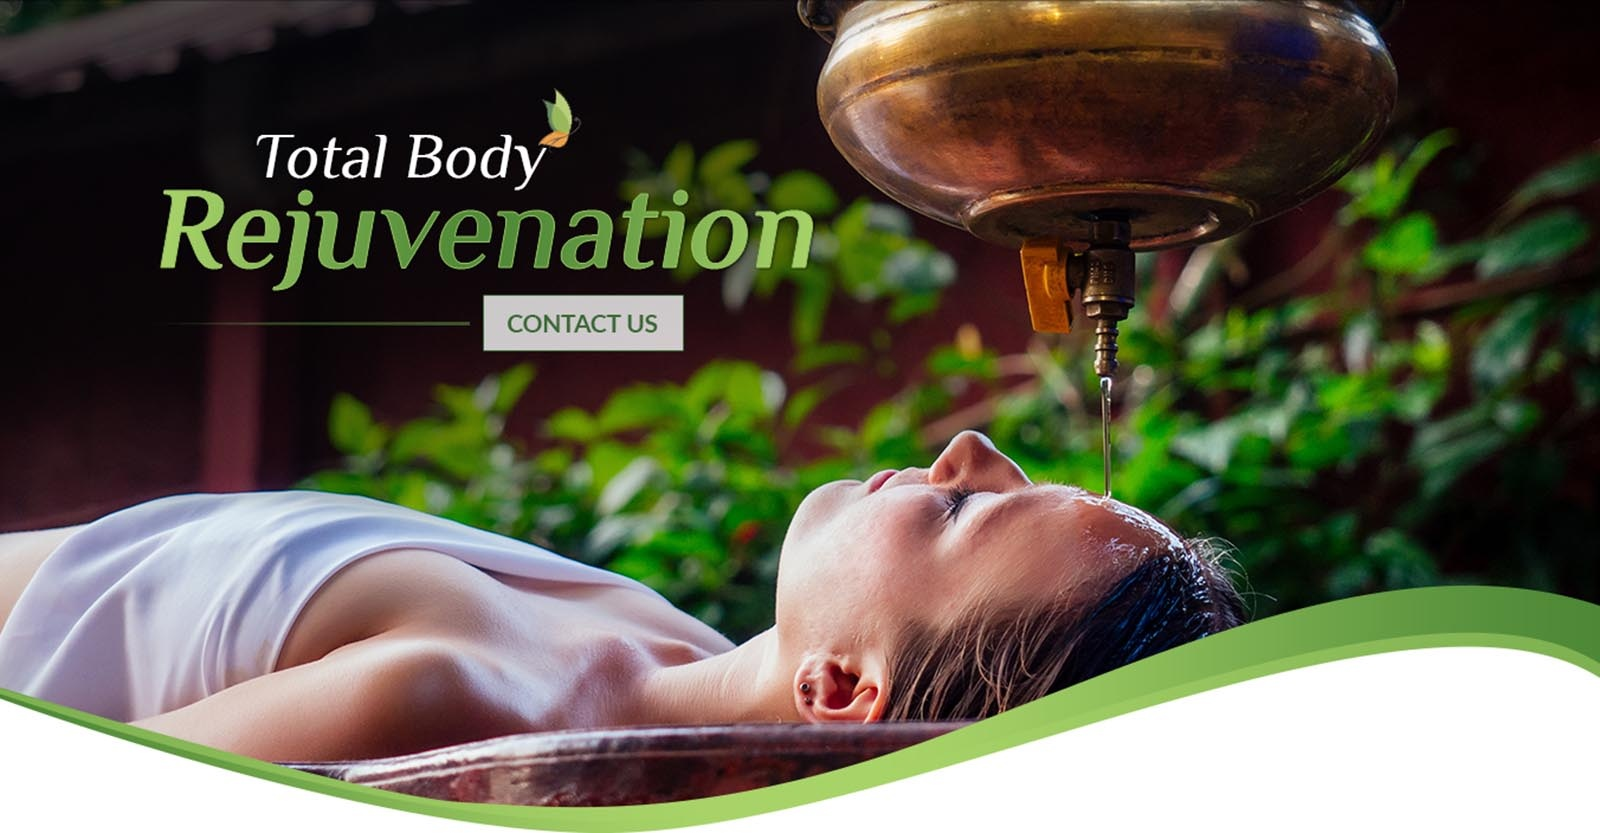 Total Body Rejuvenation Ayurvedic Clinic Mississauga